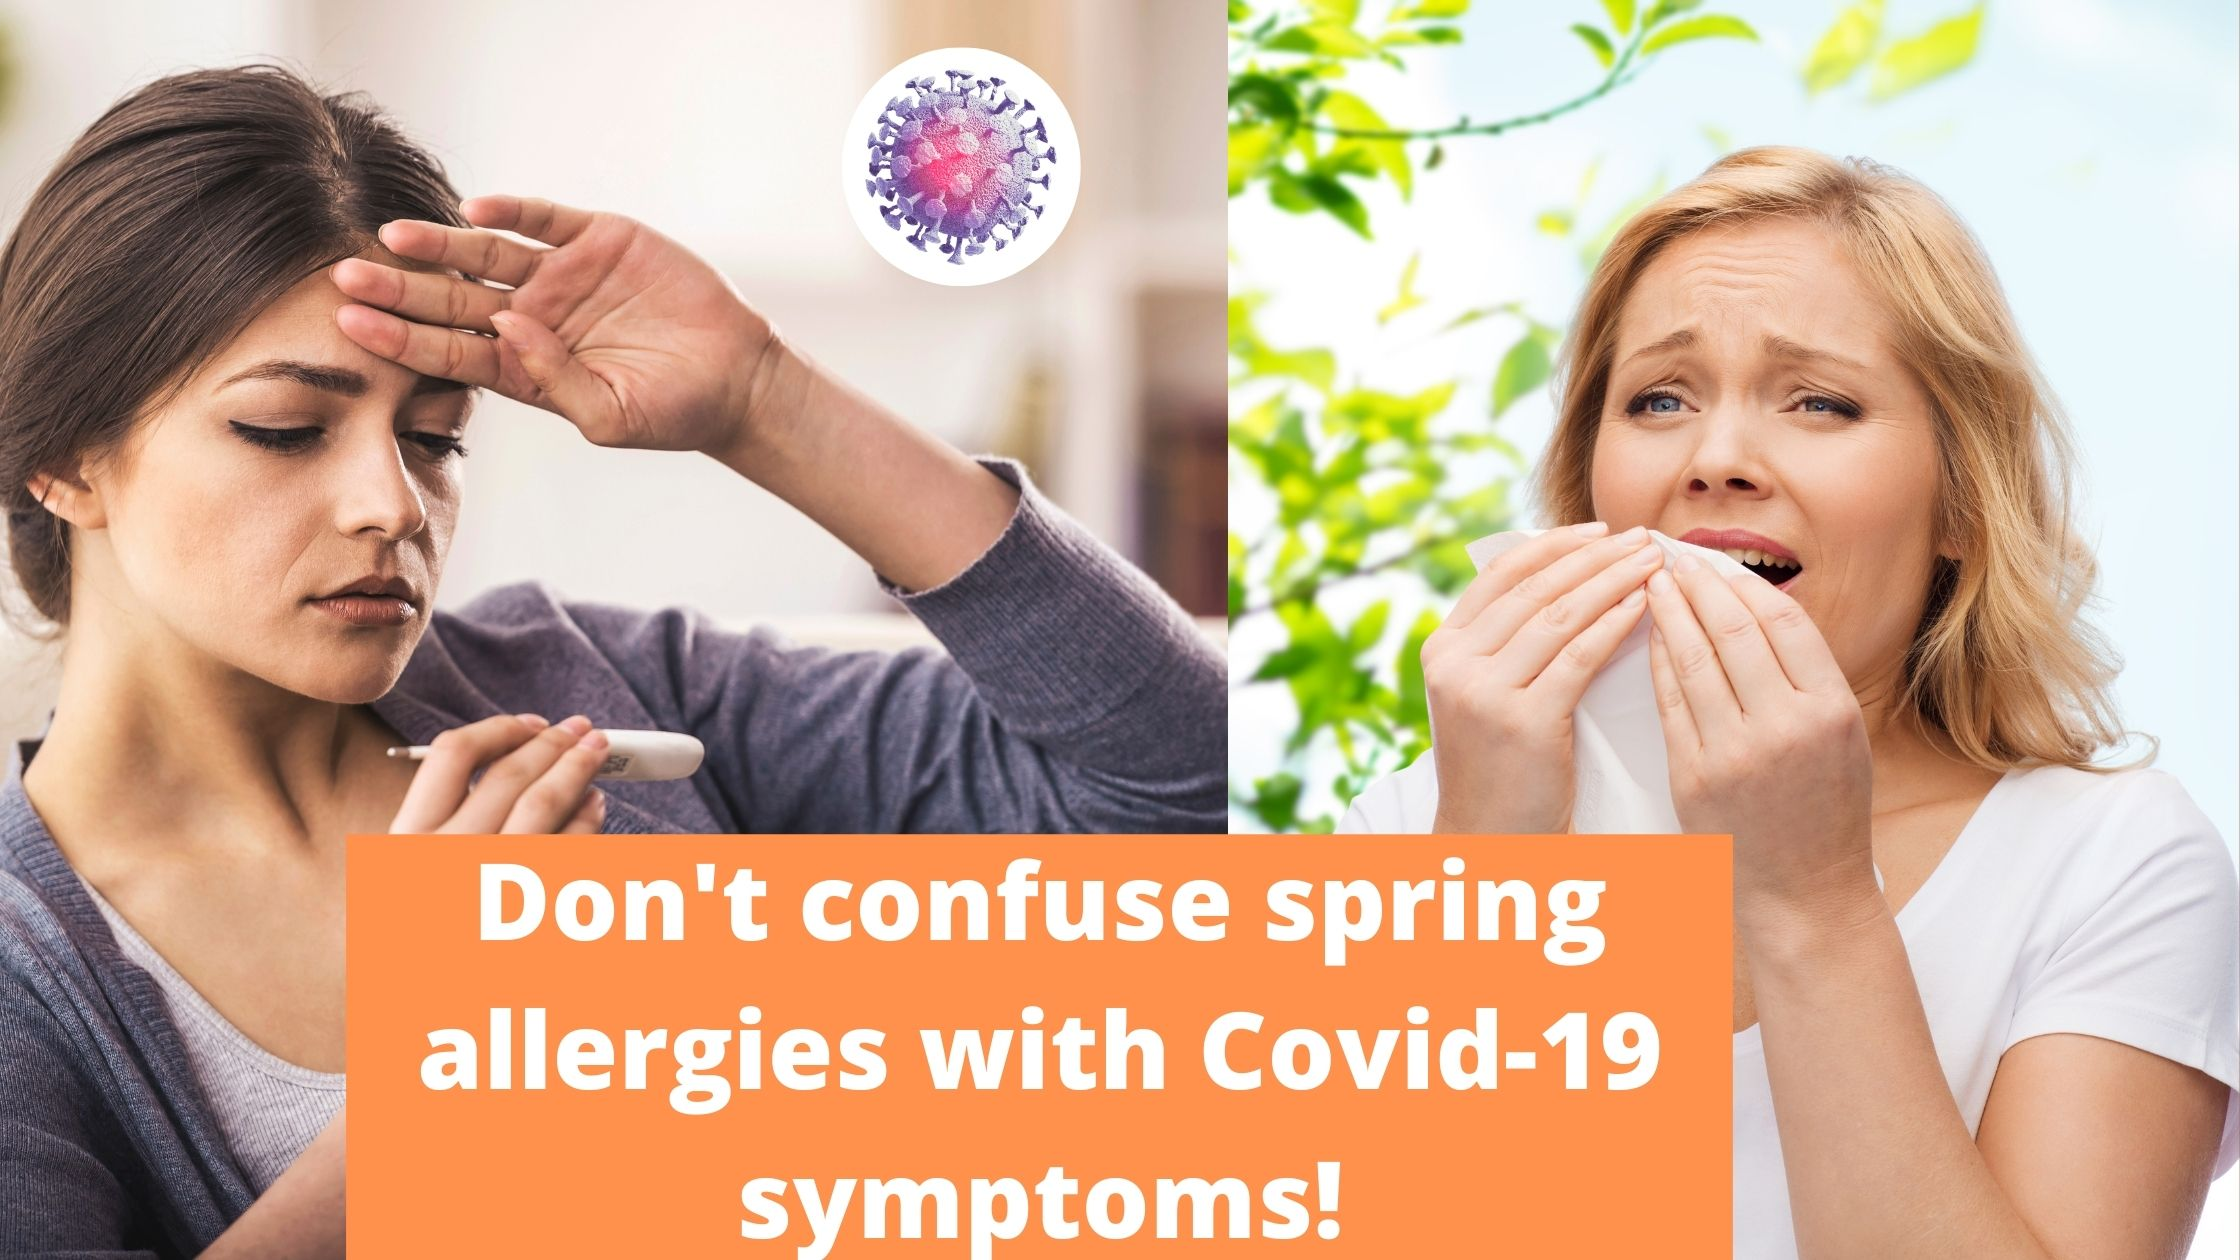 Don't confuse spring allergies with Covid-19 symptoms!